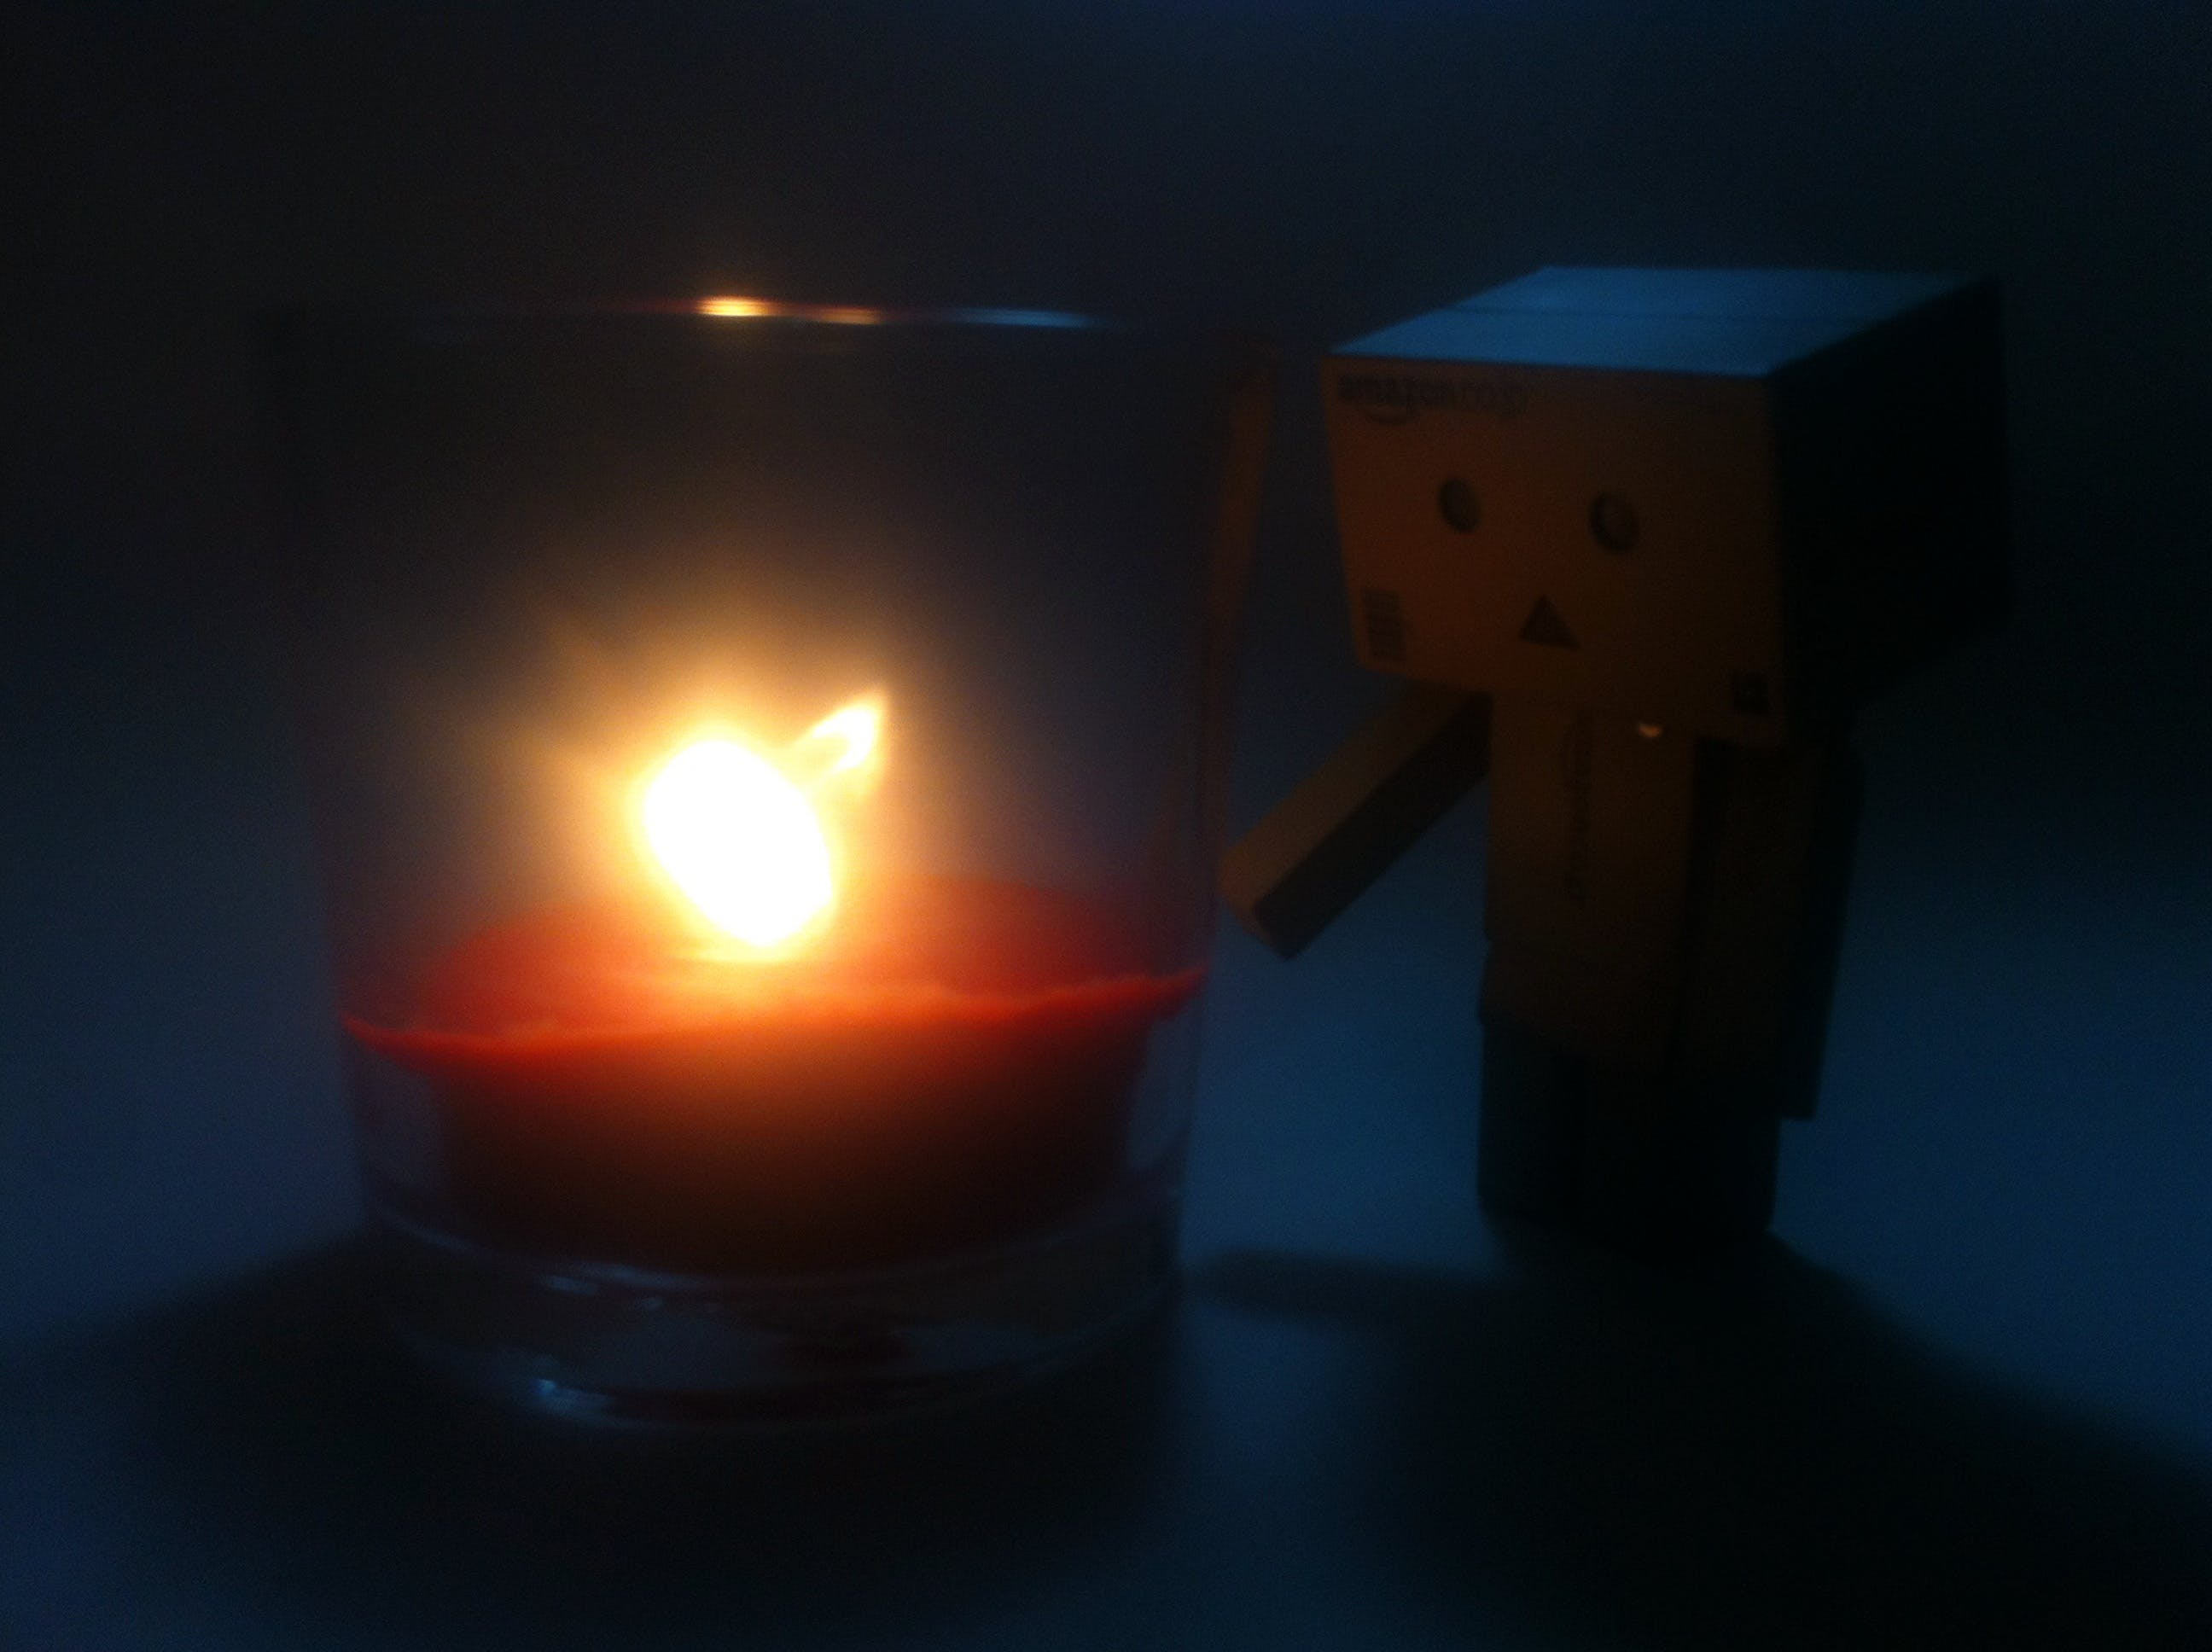 Free stock photo of danbo, danboard, fire, iphonegraphy